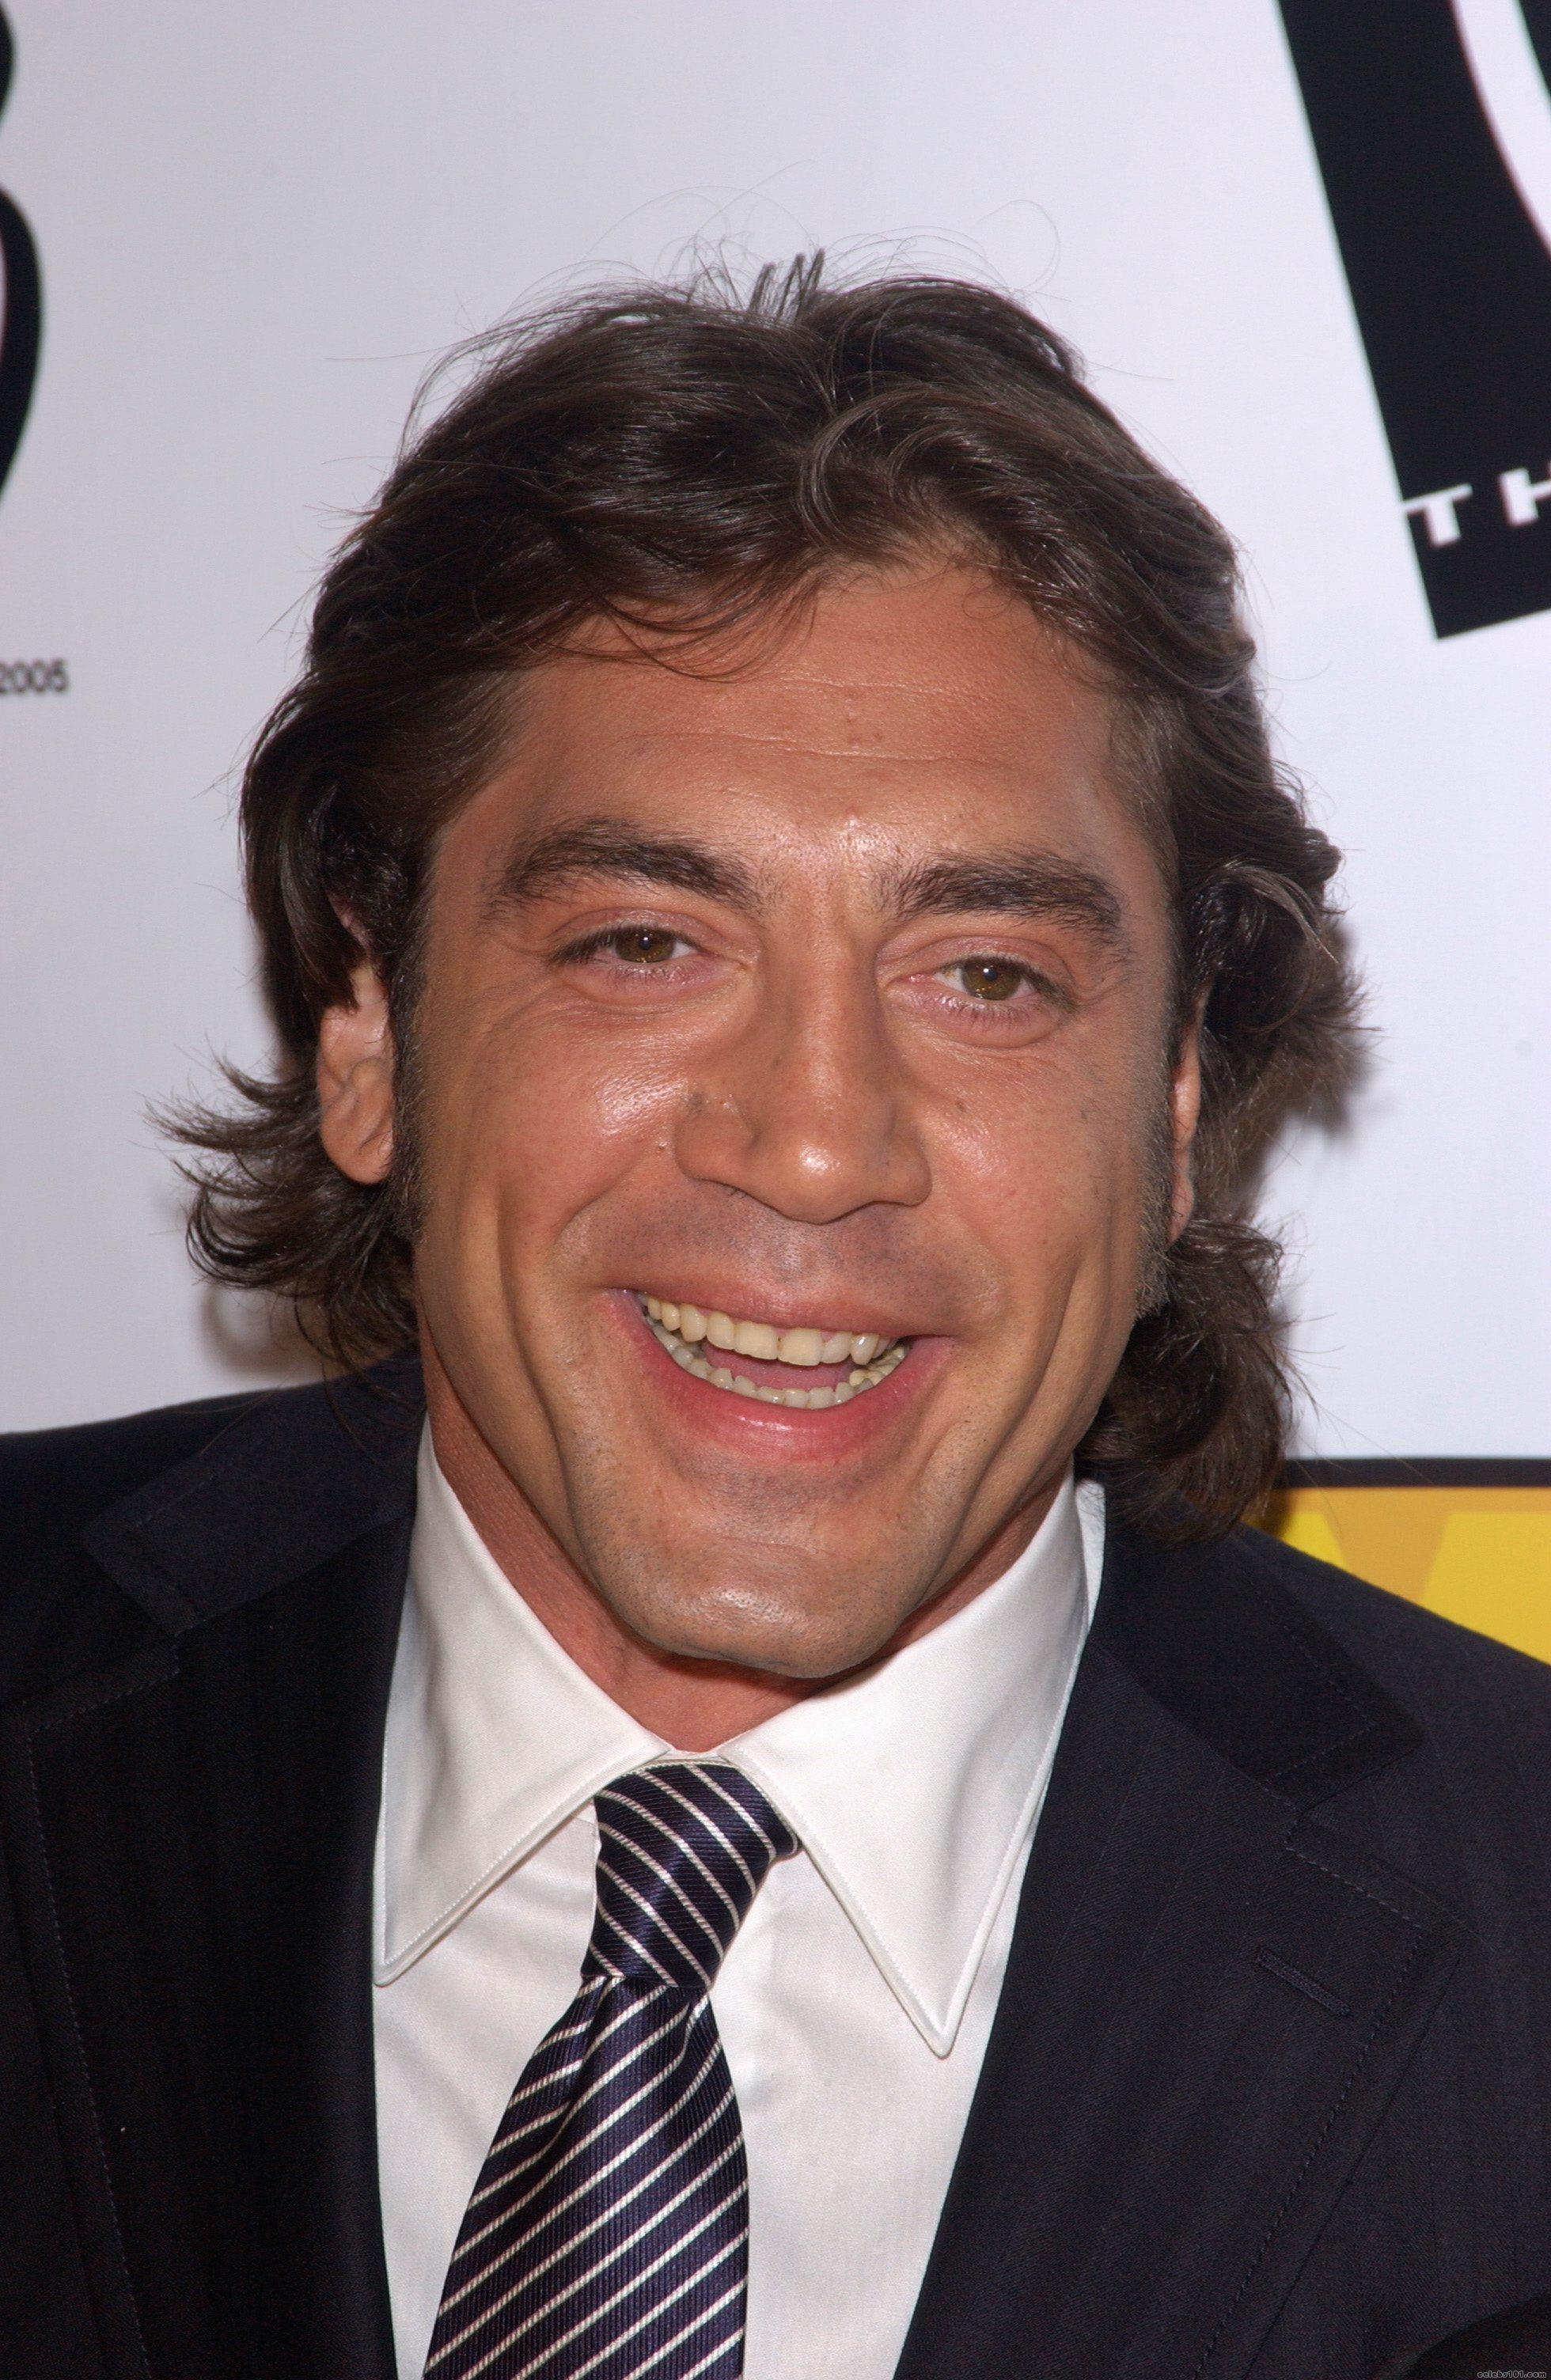 Javier Bardem - Wallpaper Actress